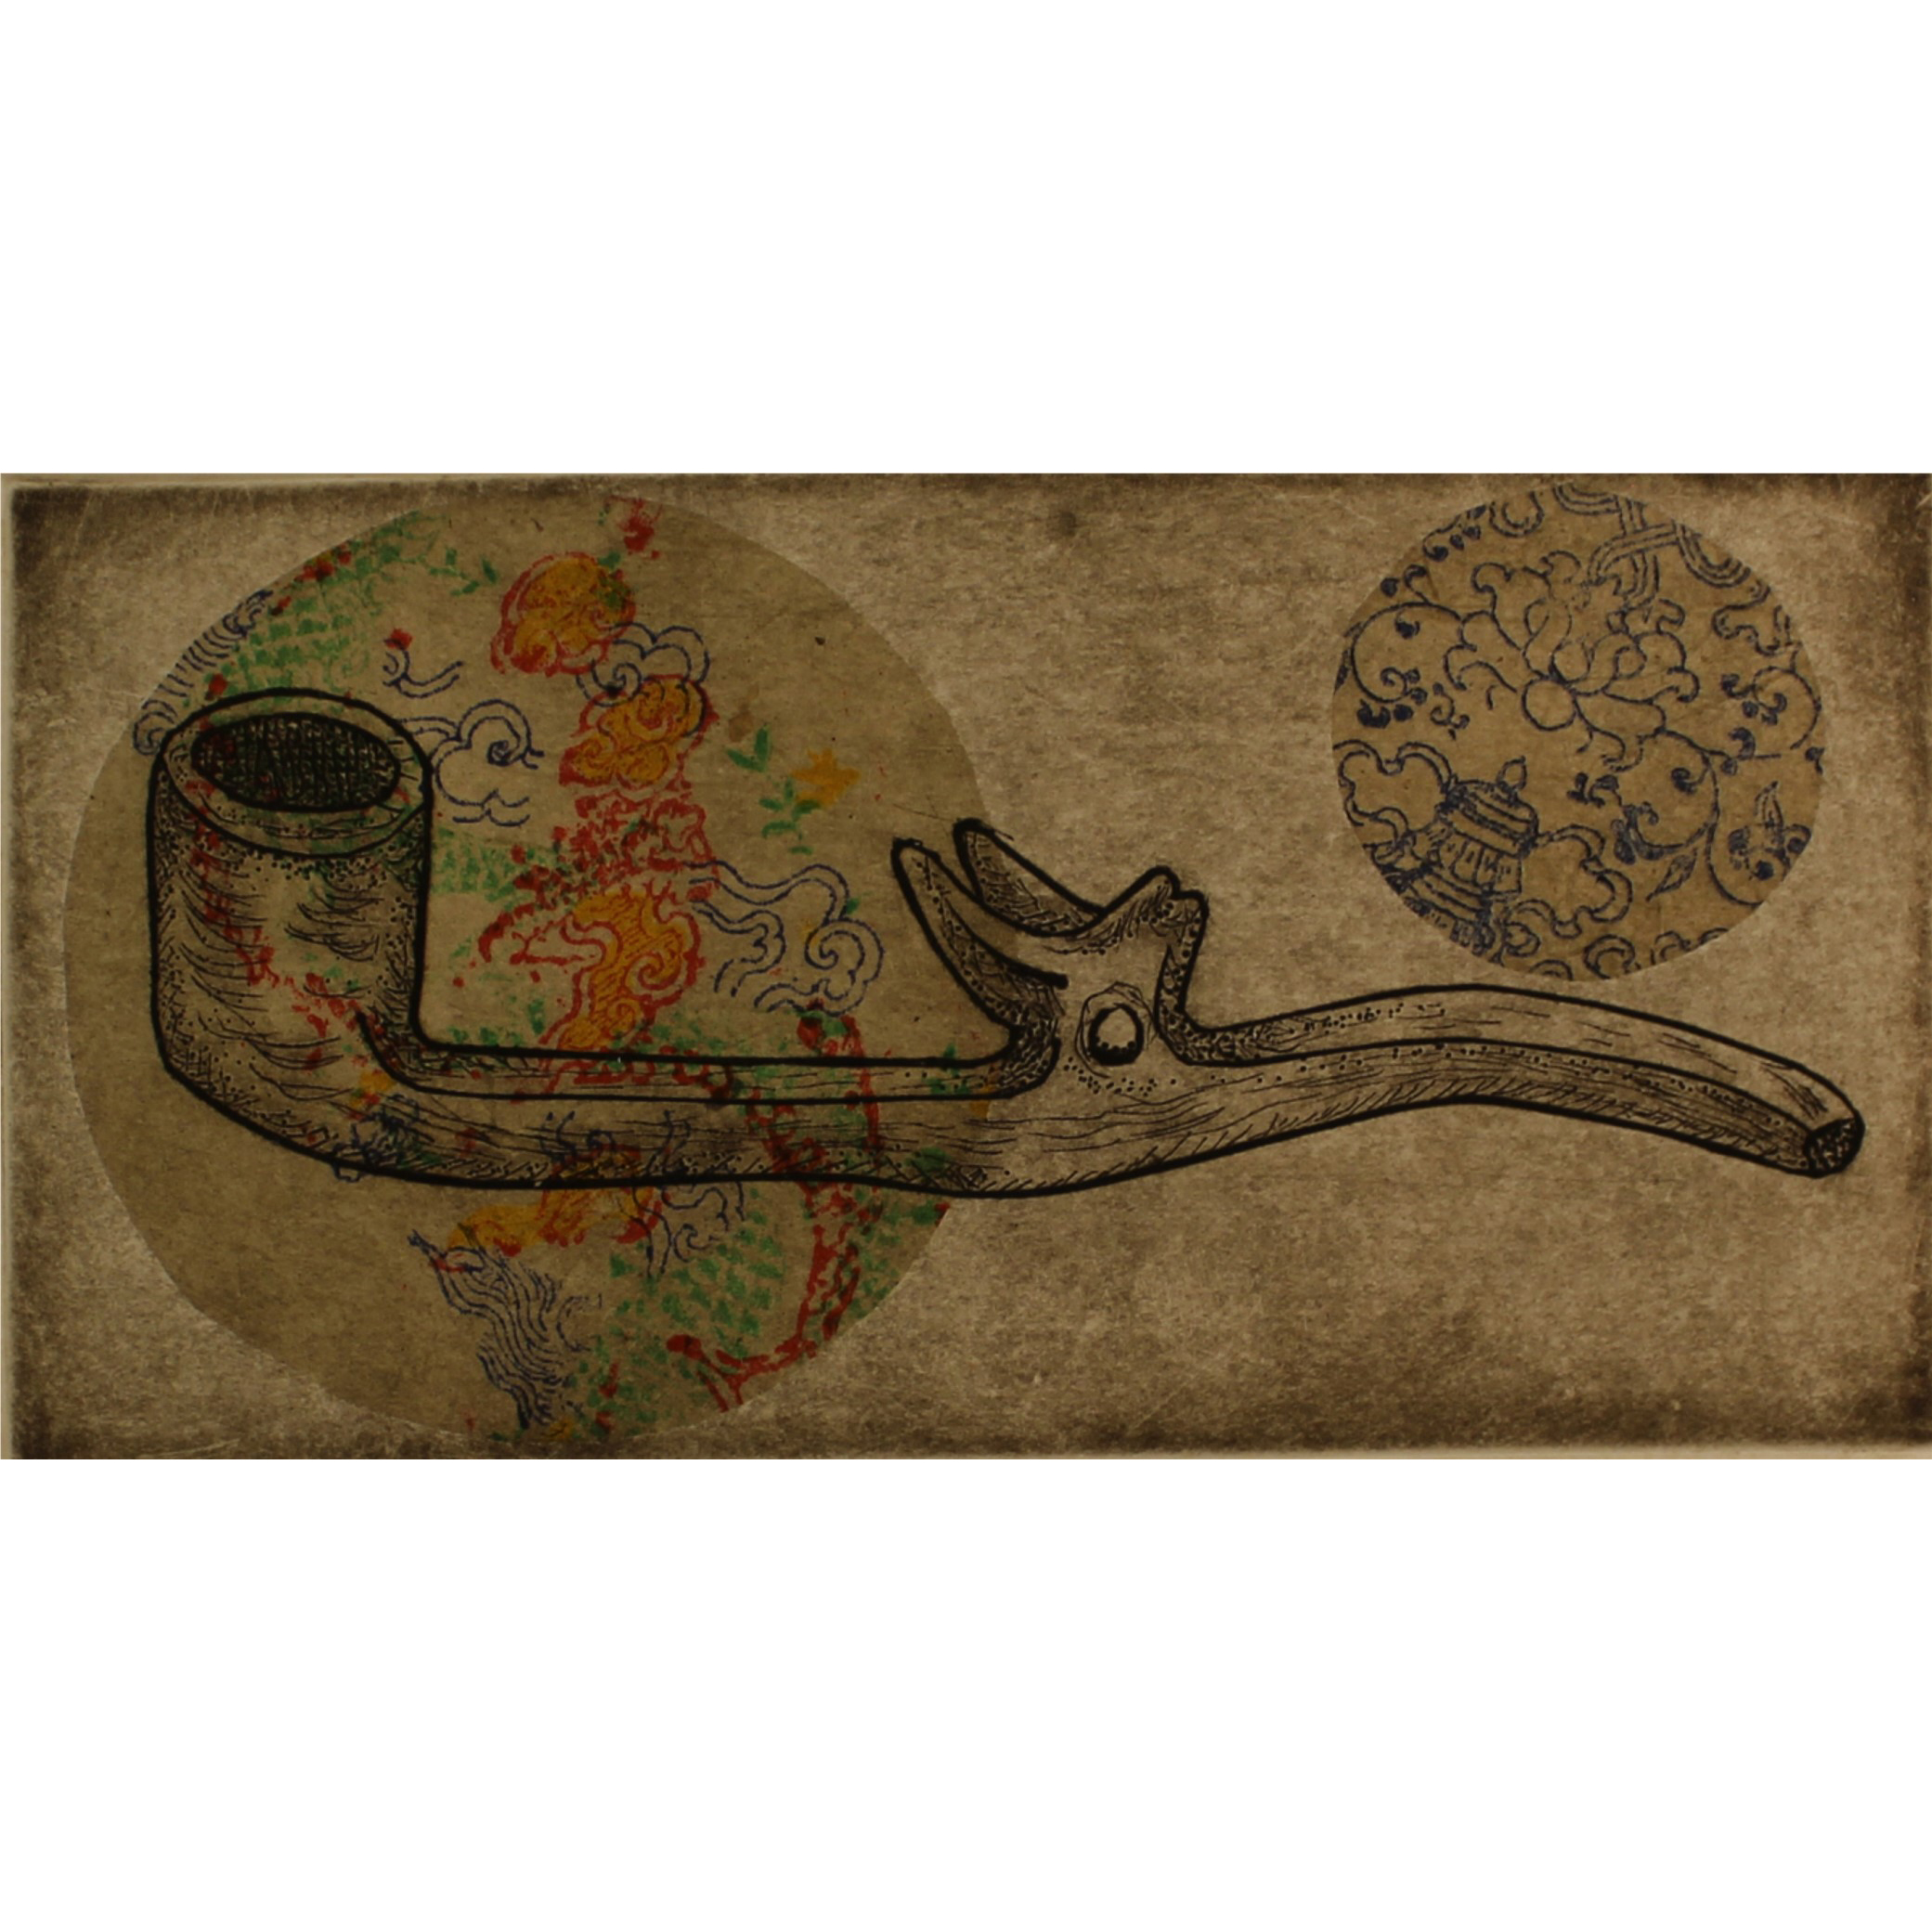 Lorna Livey, Telling Stories – Mexican Pipe, 2016, engraving, drypoint, colle